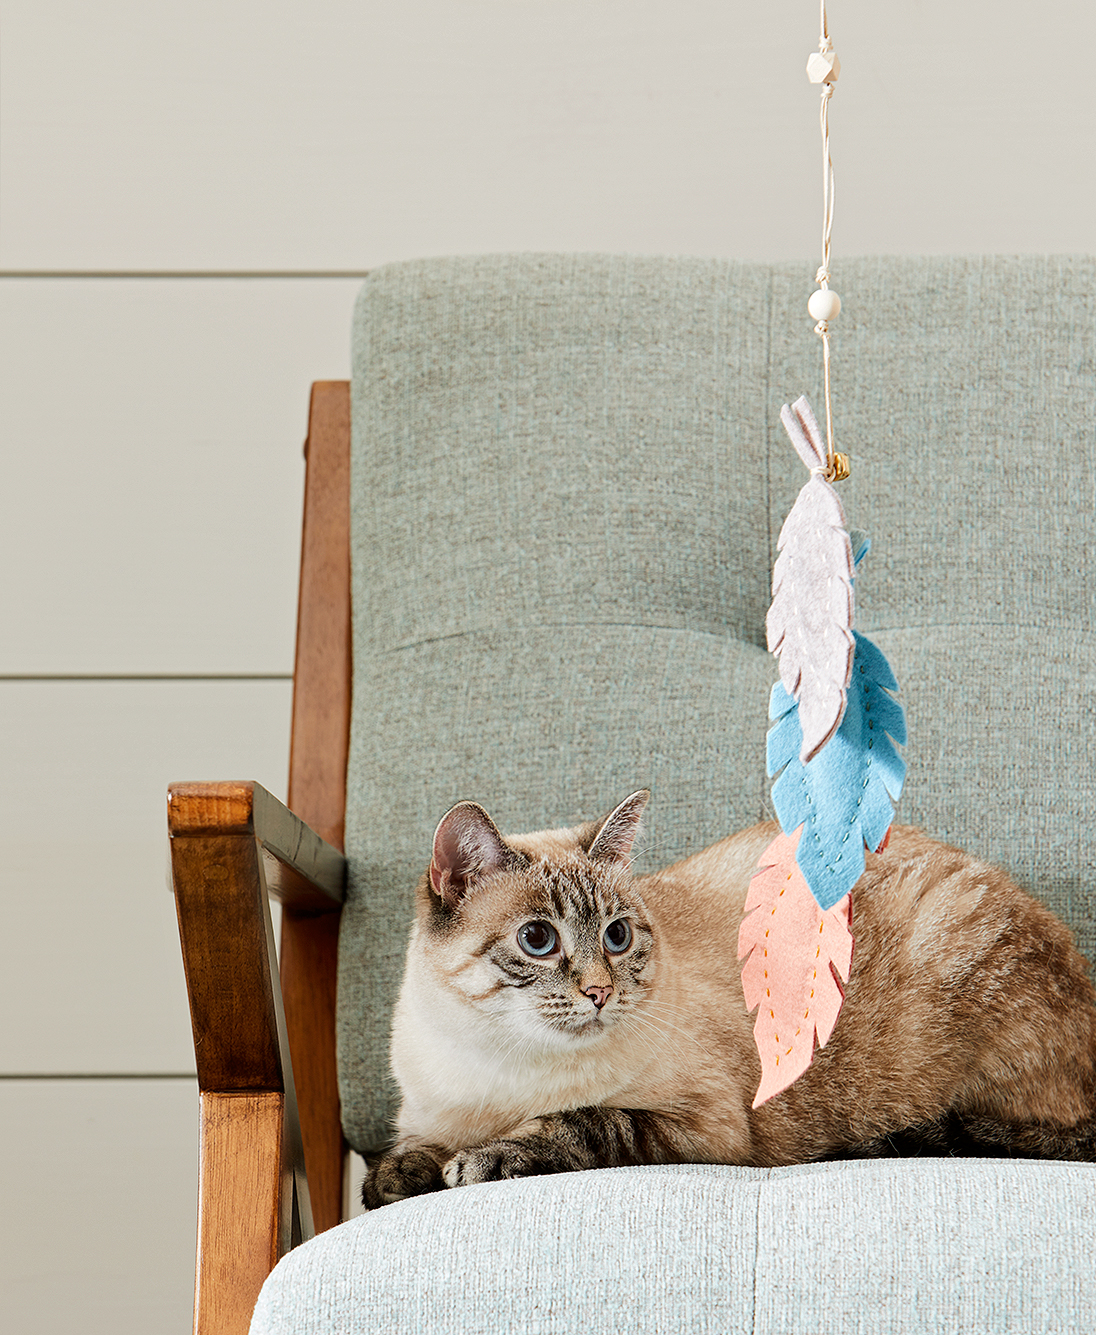 Make a DIY Felt Toy Your Cat Will Love